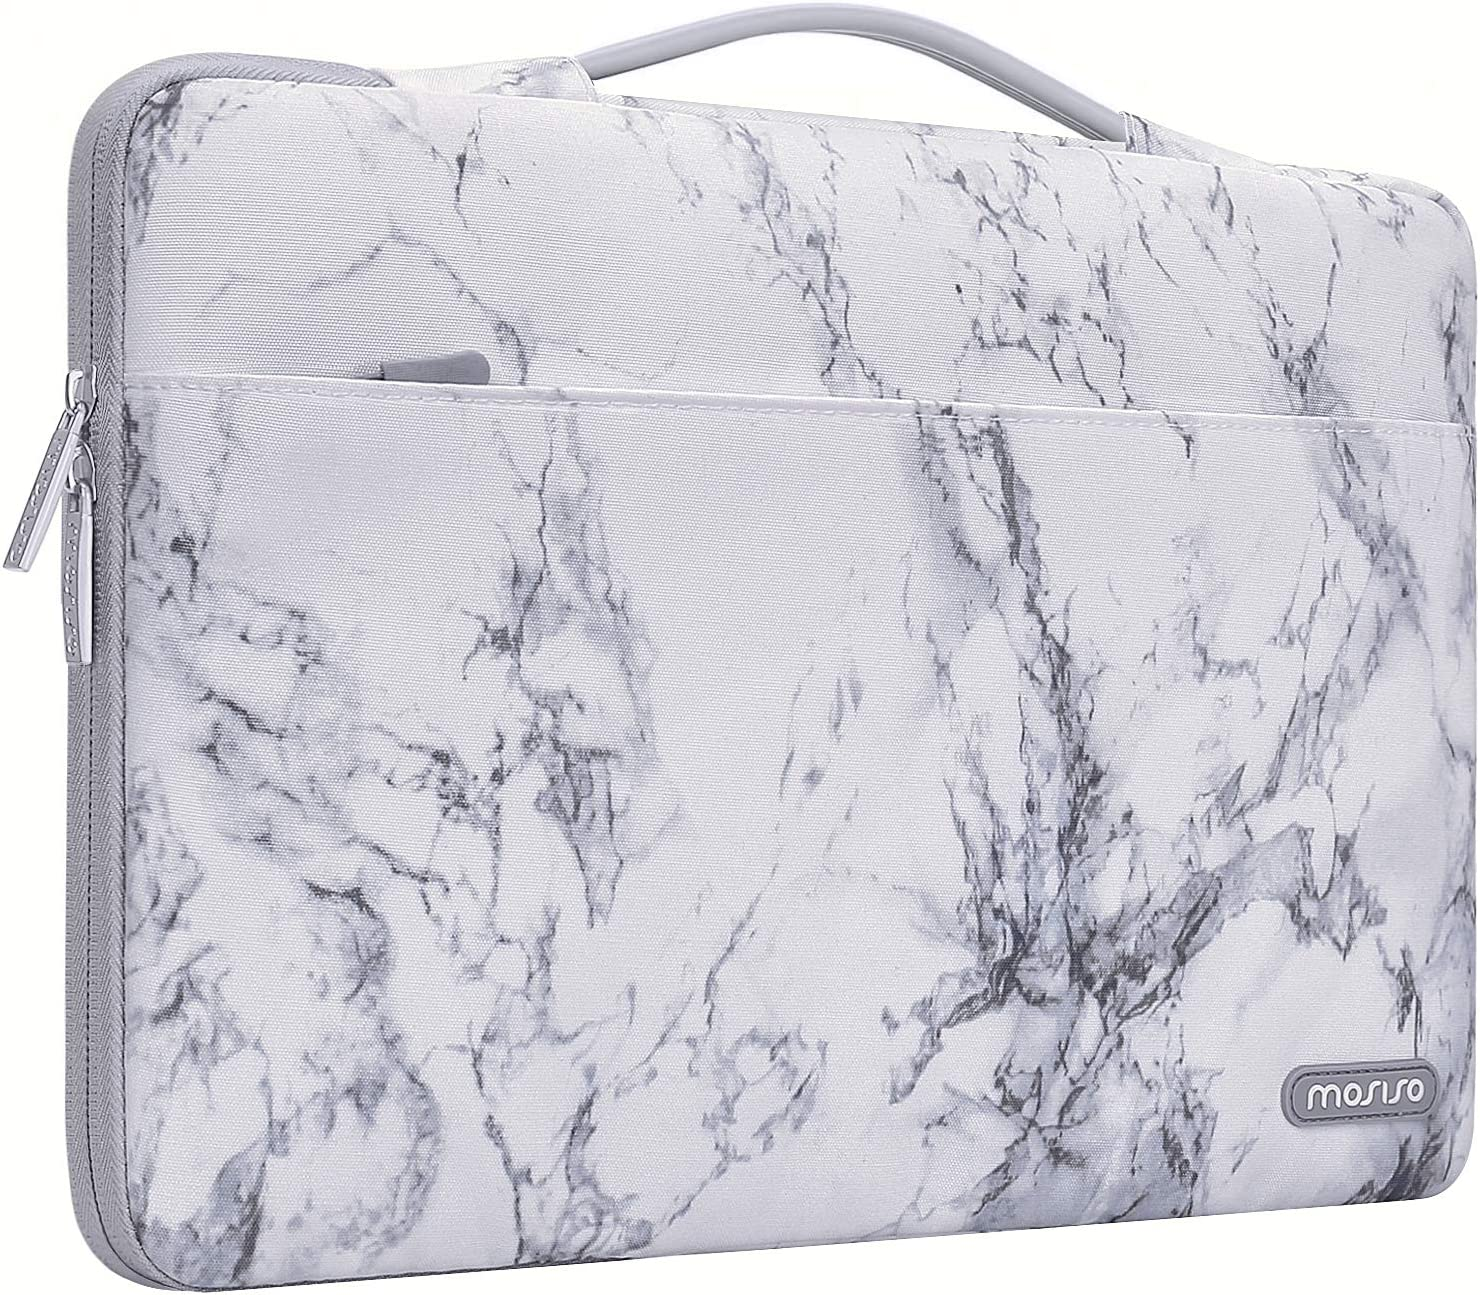 MOSISO Laptop Sleeve 360 Protective Case Bag Compatible with 13-13.3 inch MacBook Pro, MacBook Air, Notebook, Polyester Pattern Shockproof Handbag with Trolley Belt, White Marble